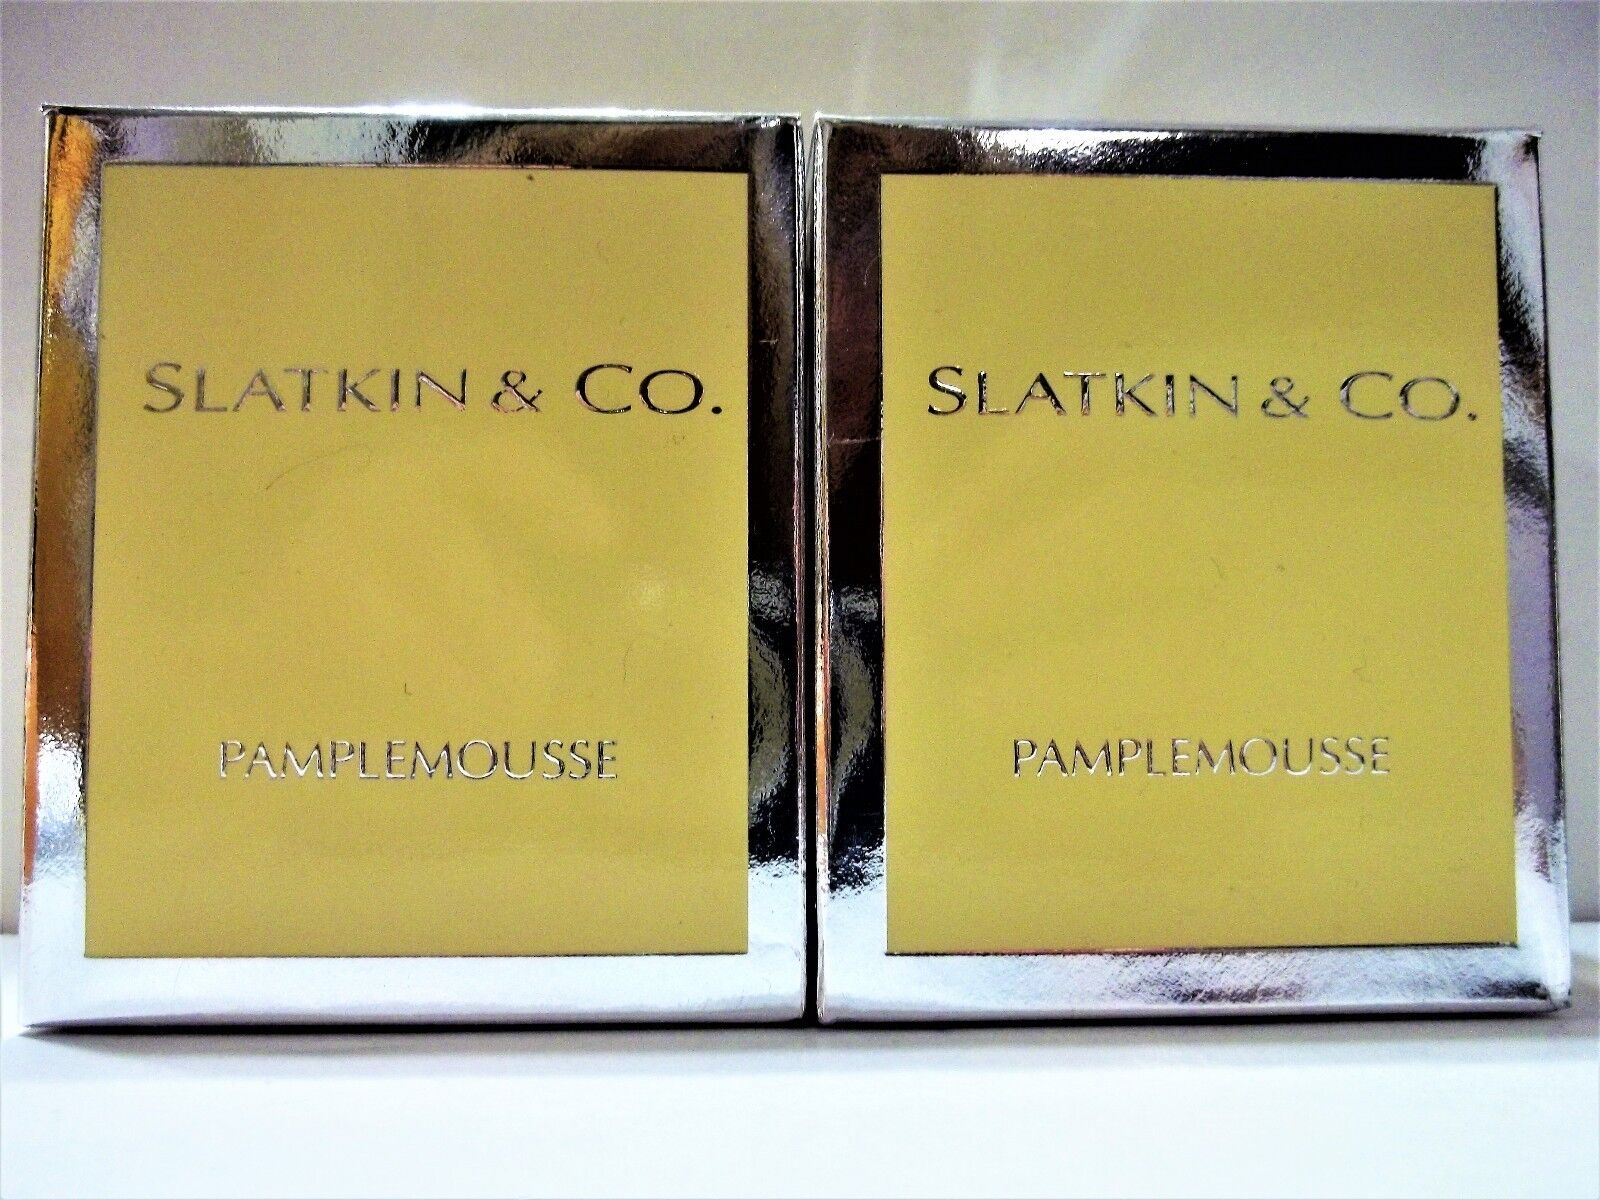 Bath Body Works Slatkin & Co. PAMPLEMOUSSE (grapefruit) Candle, 6 oz., NEW, x 2